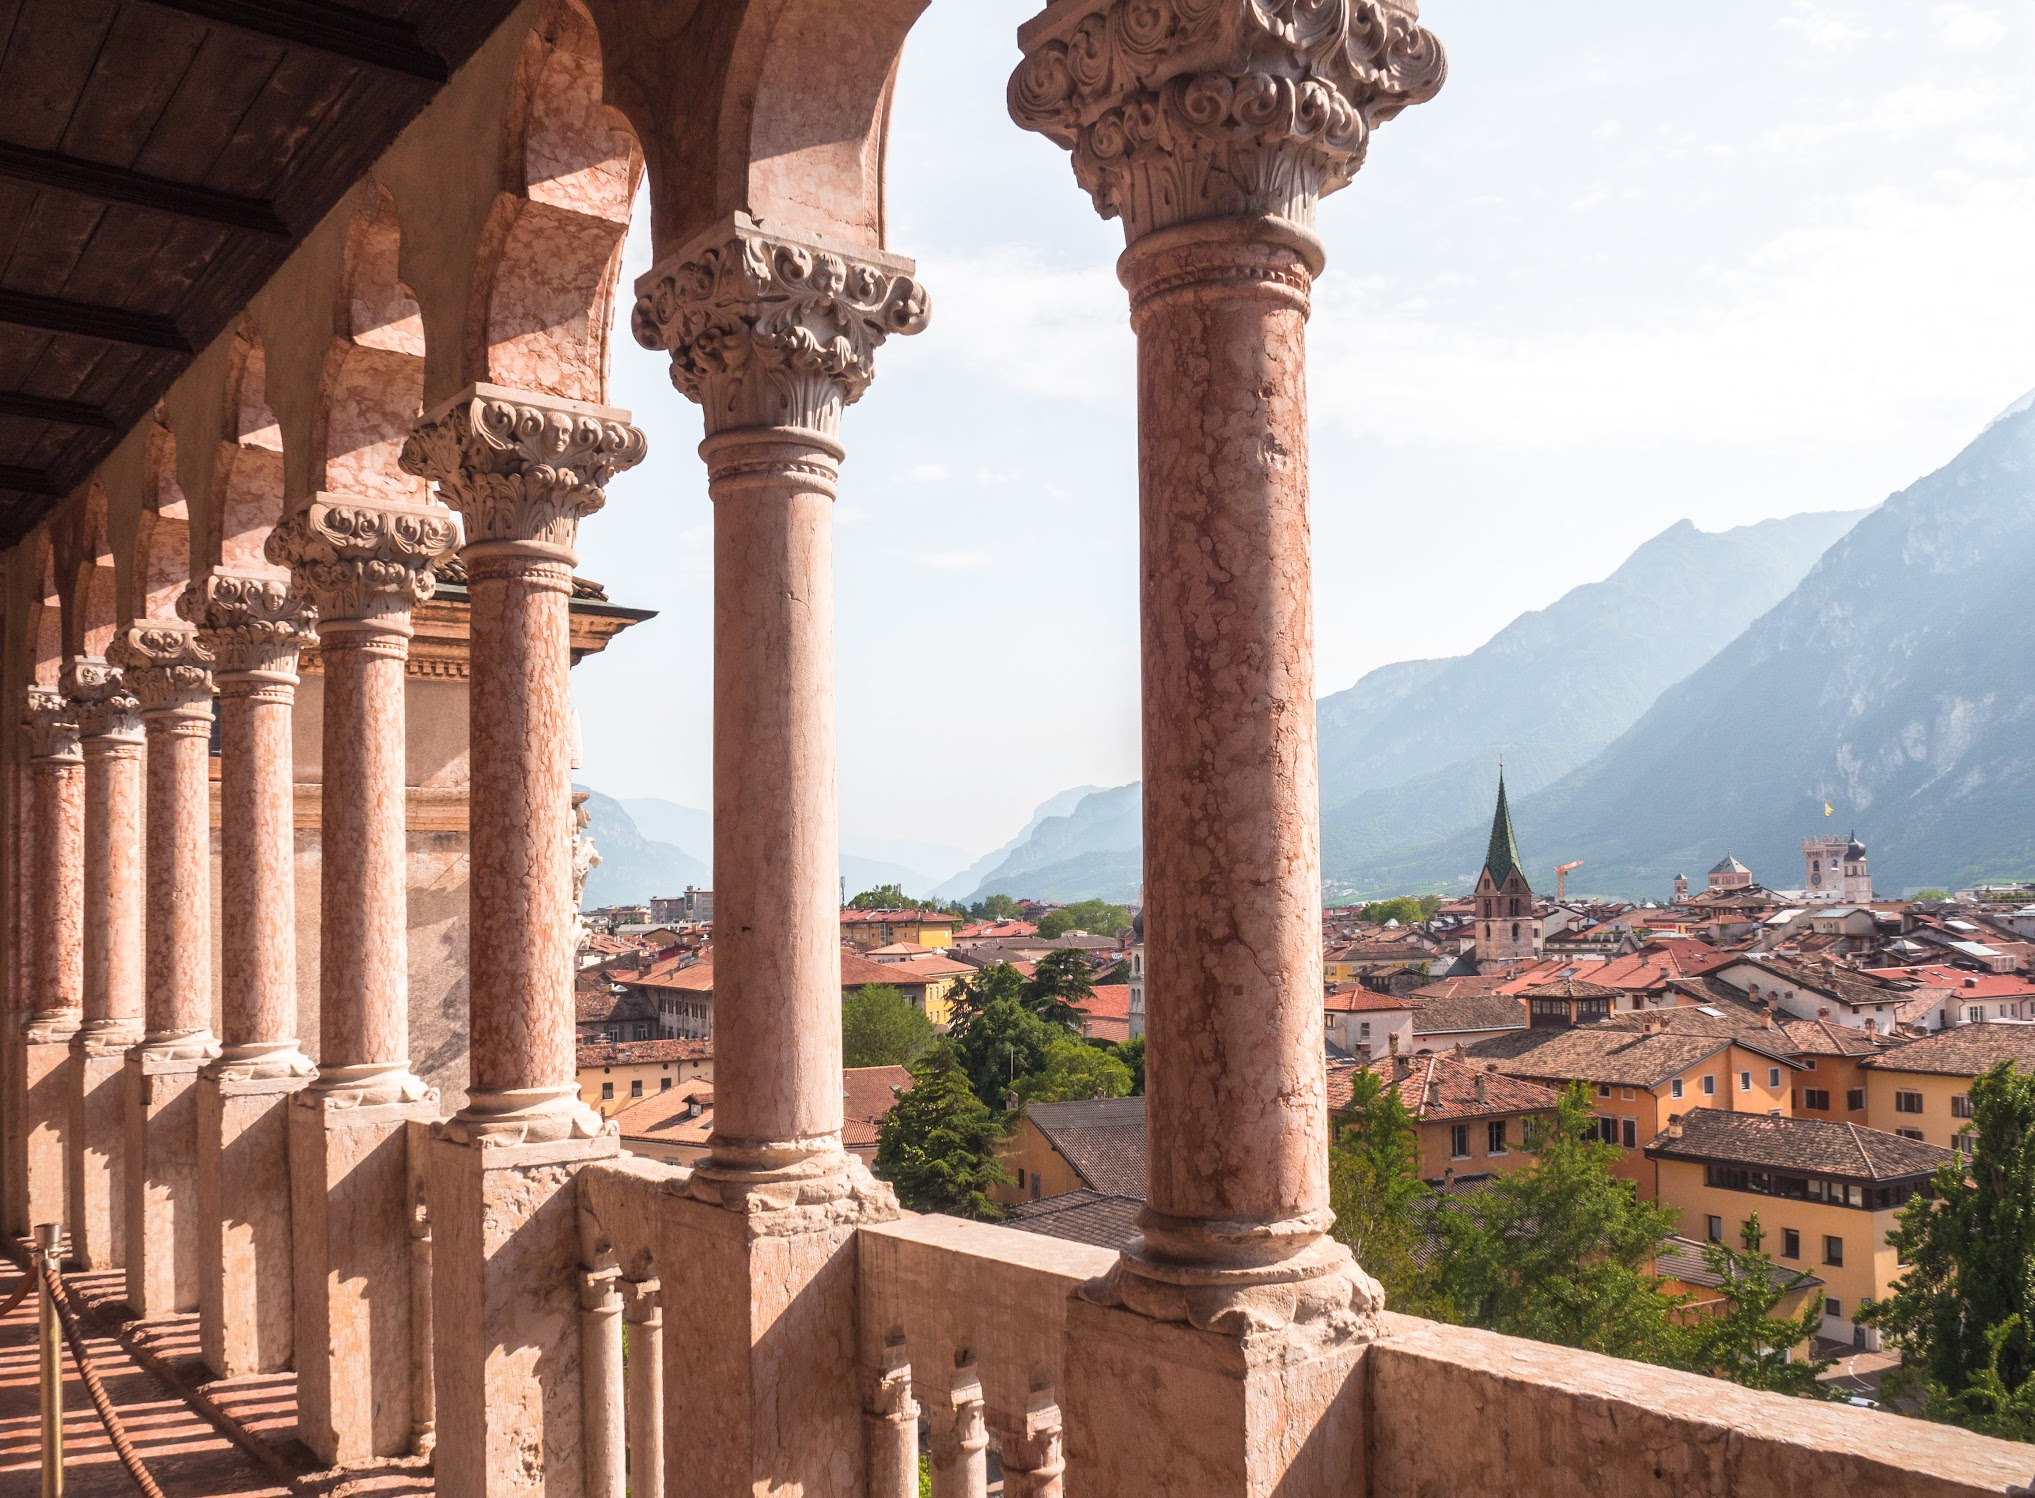 The town of Trento.